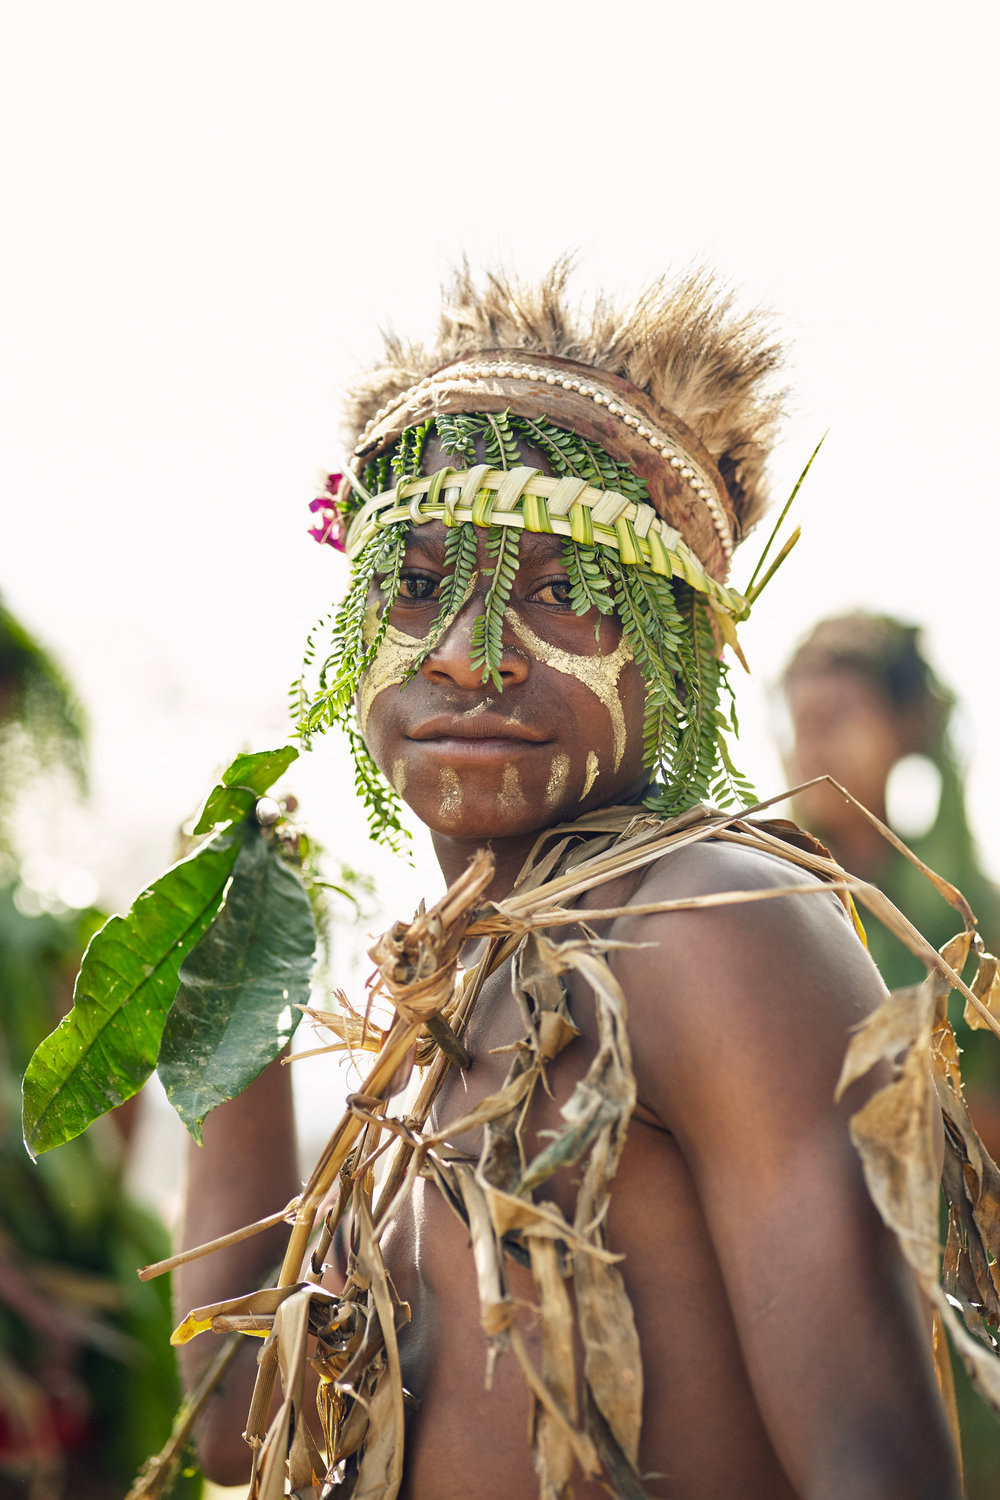 YONKI TRIBE BOY, PAPUA NEW GUINEA